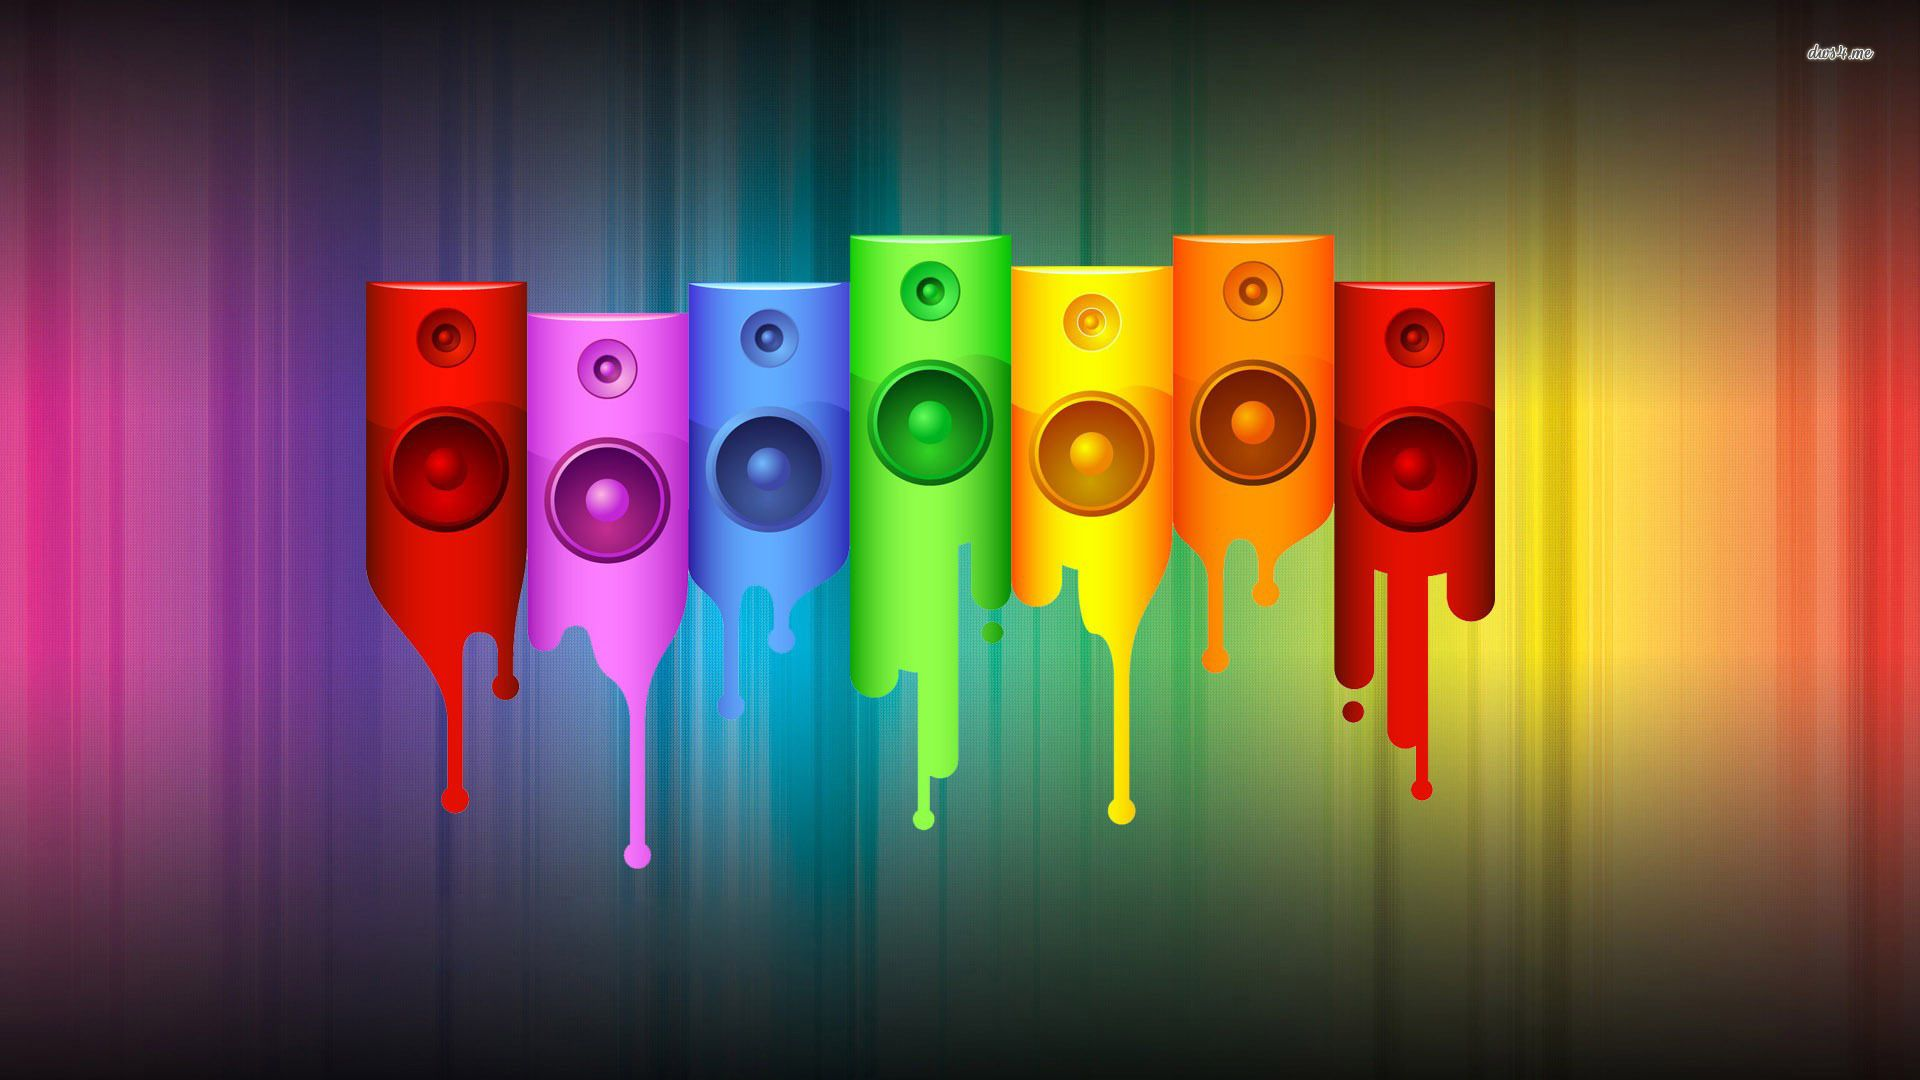 Colorful Music Wallpapers 19 85634 Images HD